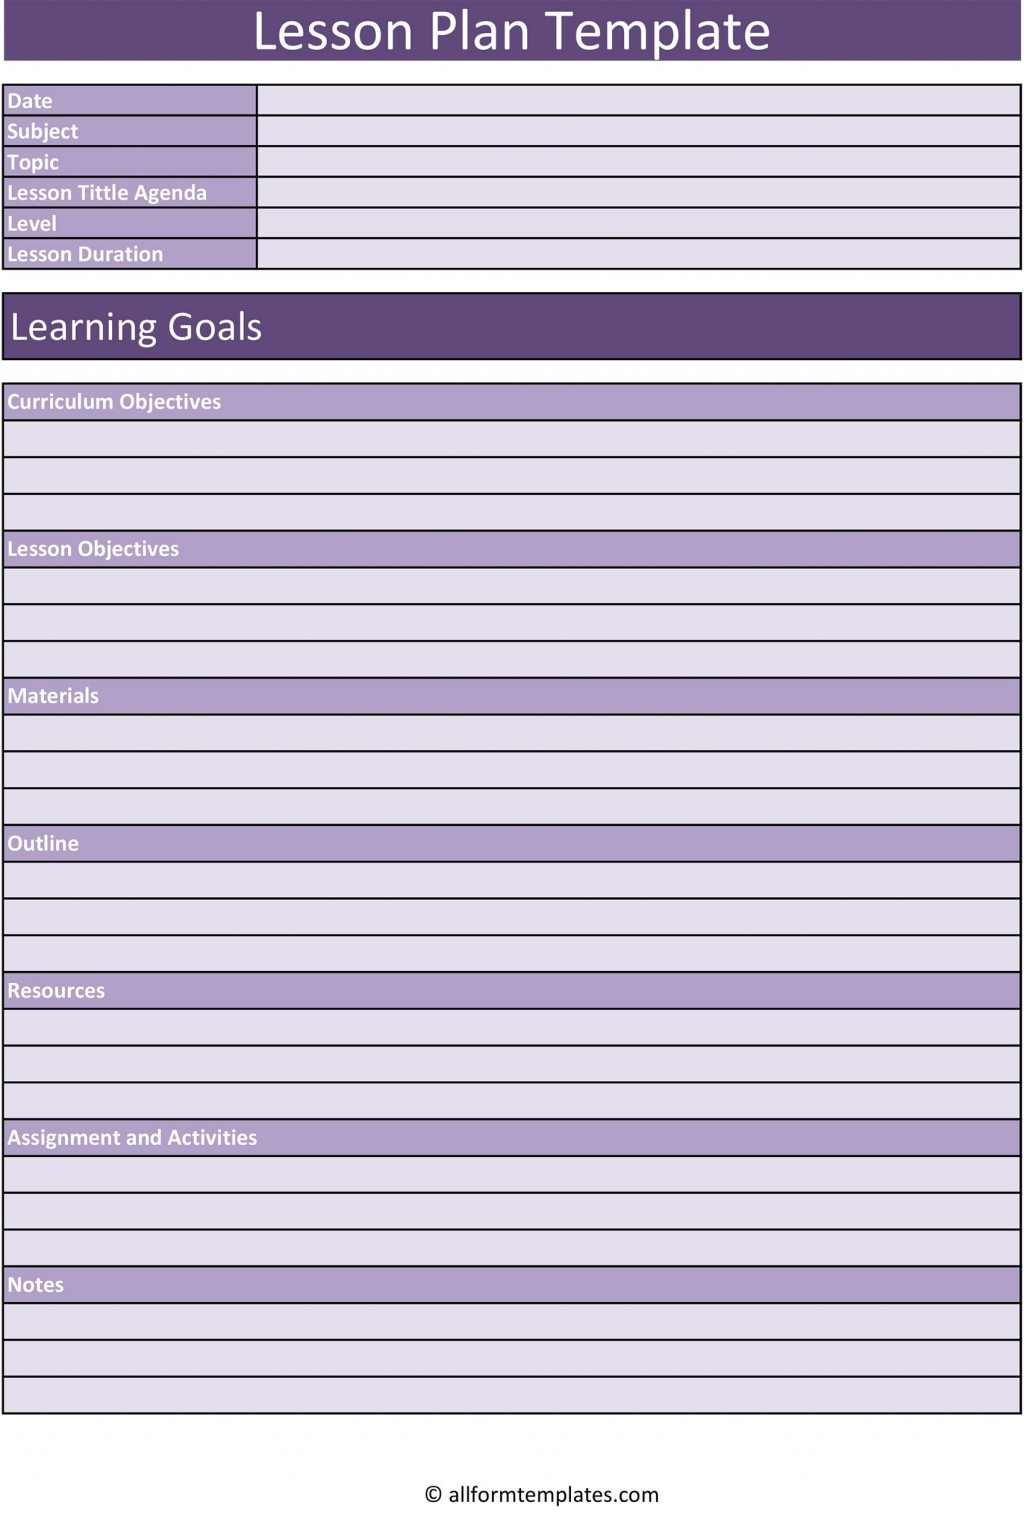 007 Stupendou Lesson Plan Template Excel Free Highest Clarity Large